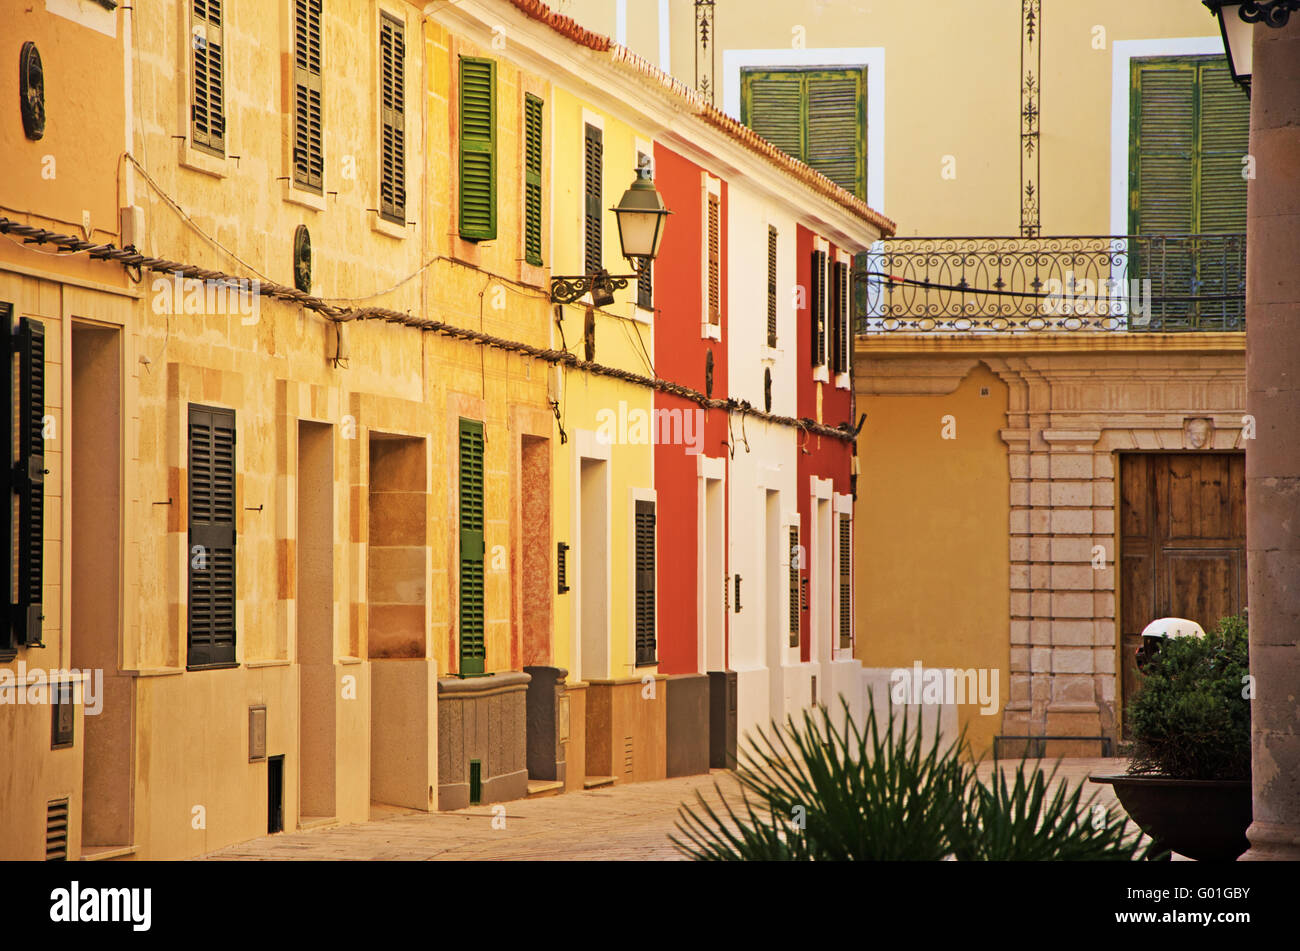 Menorca, Balearic Islands, Spain, Europe: palaces and building in the streets and alleys of the old town of Ciutadella Stock Photo